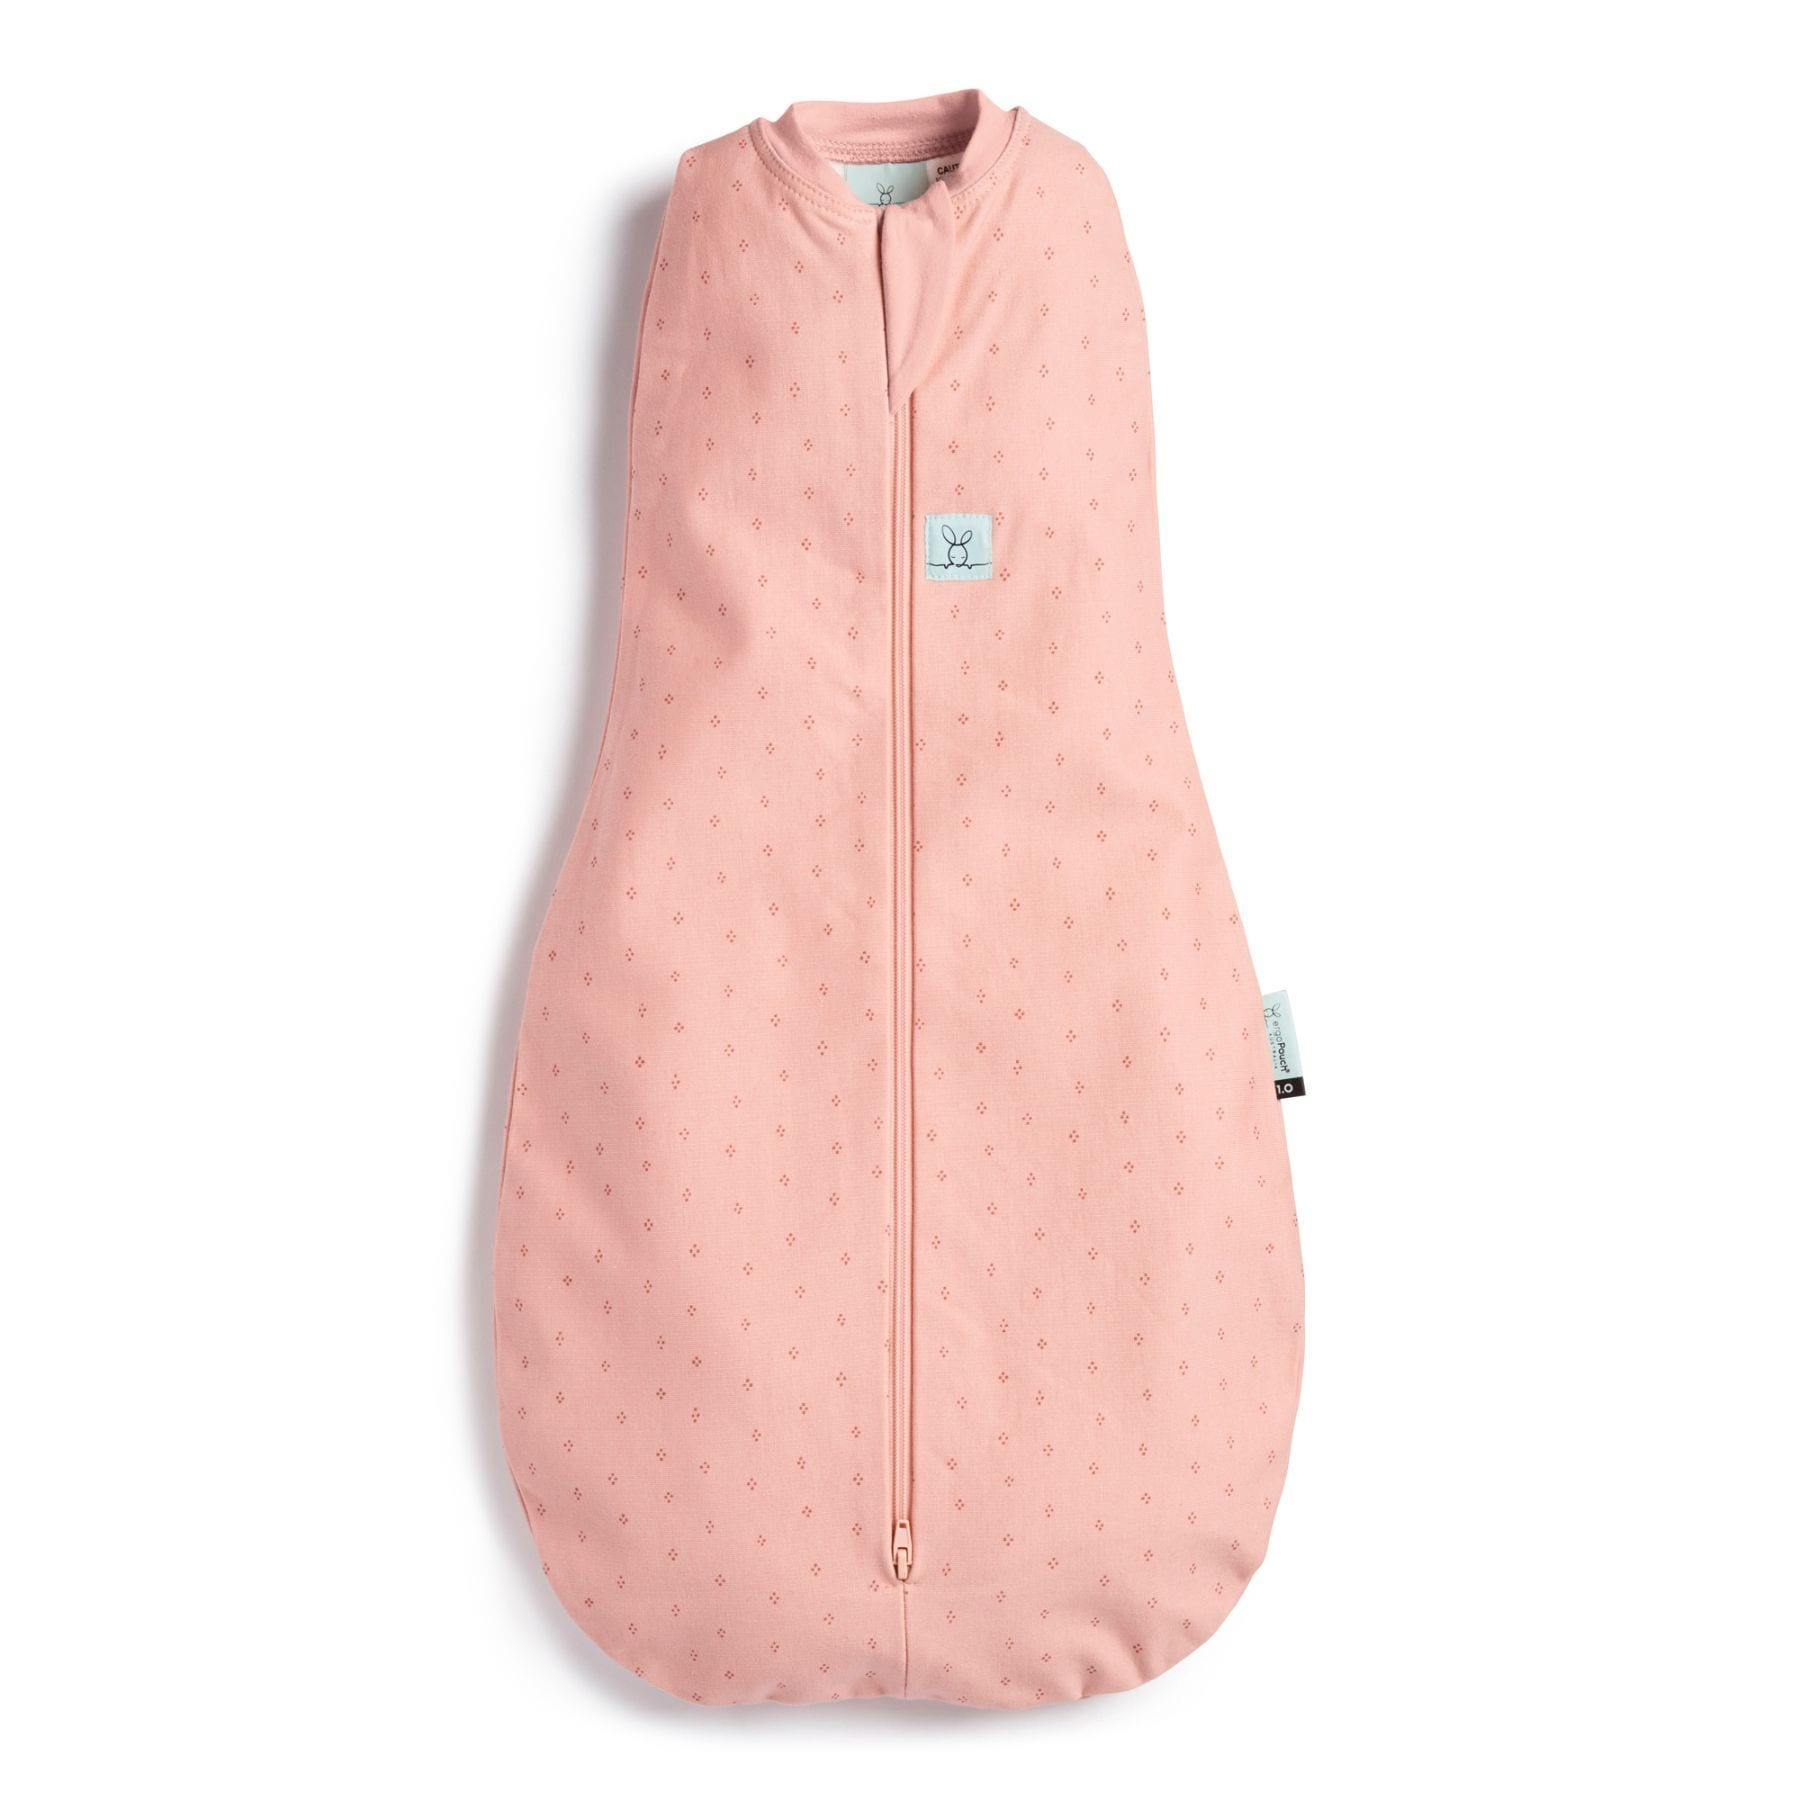 Ergopouch 1.0 TOG Cocoon Swaddle Bag - Berries